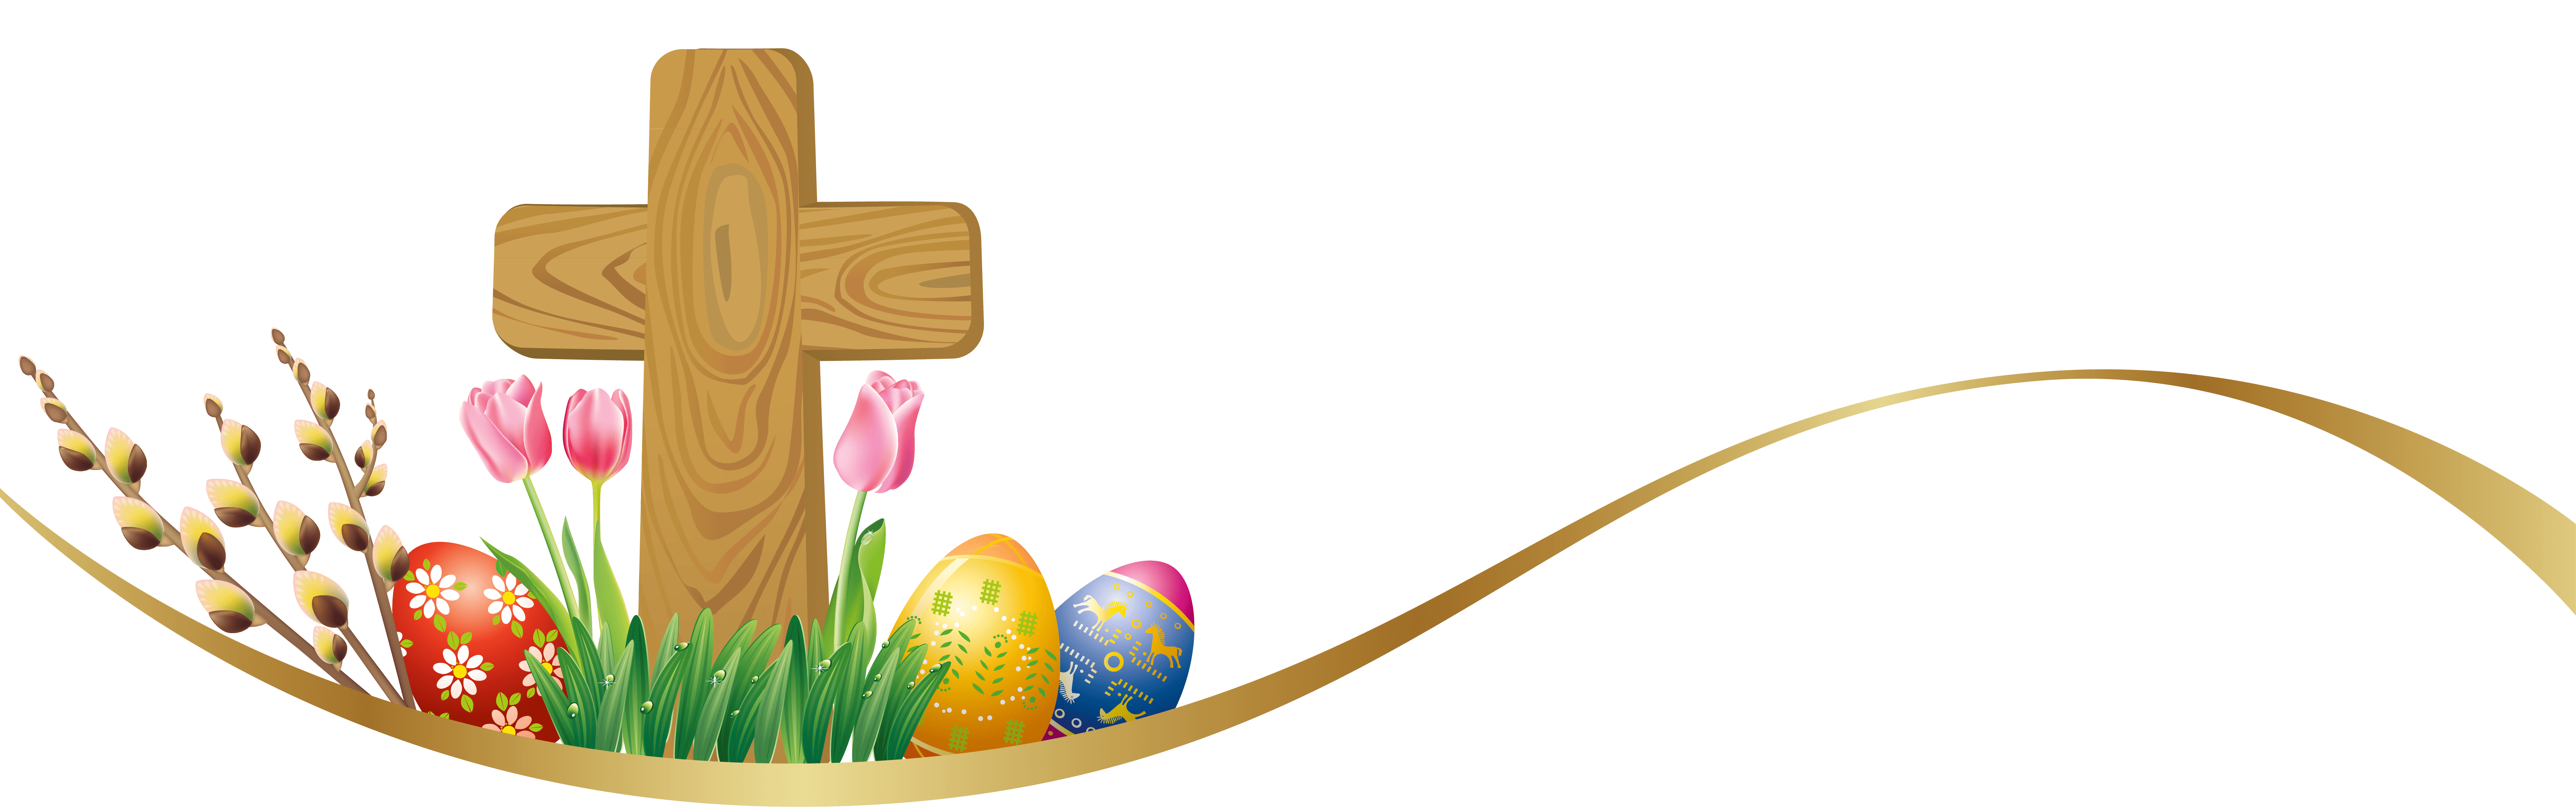 Cross clipart holy week. Free easter merry christmas